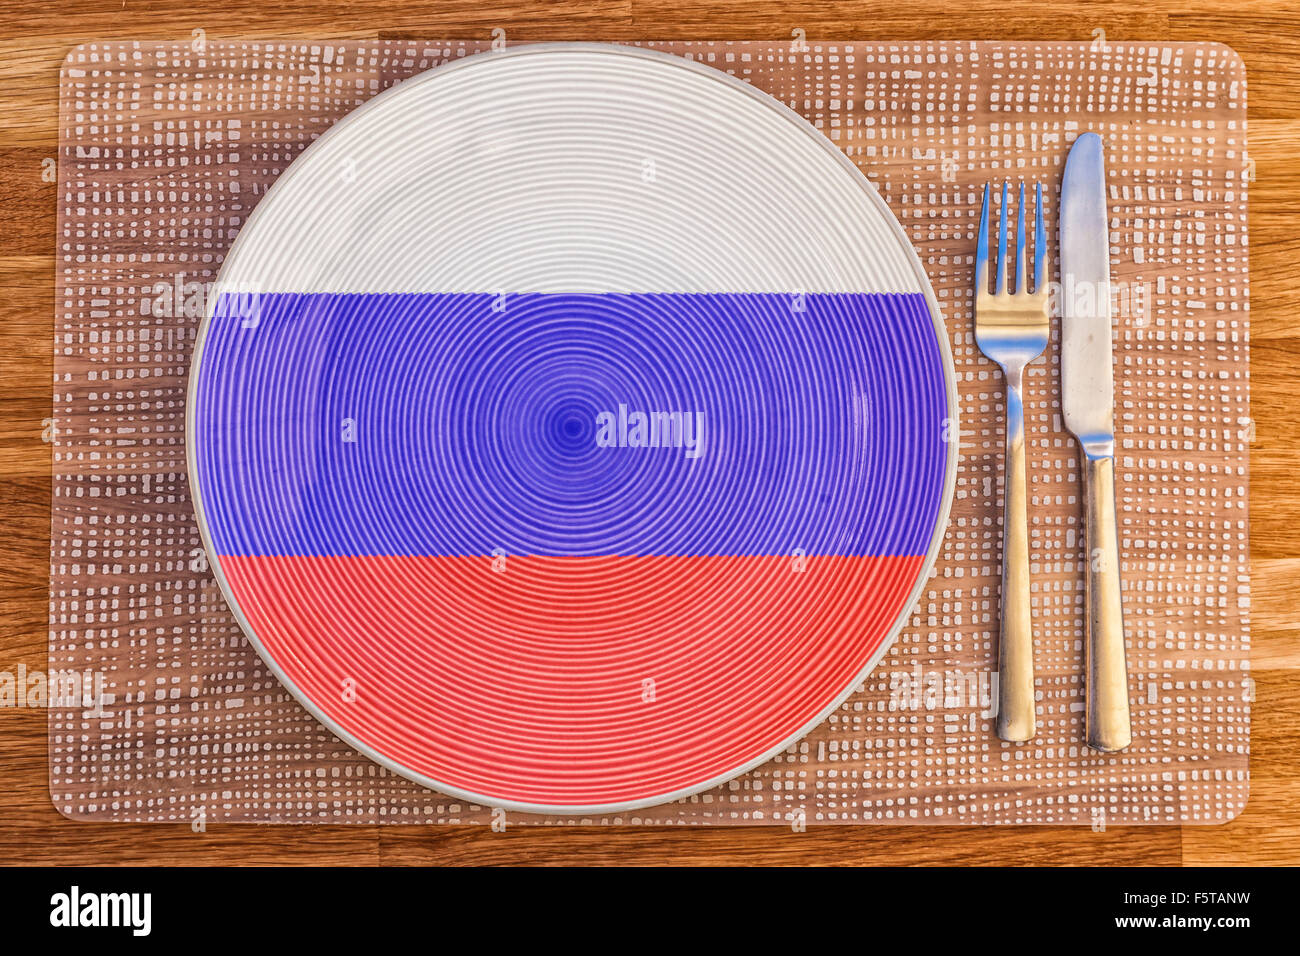 Dinner plate with the flag of the Russian Federation on it for your international food and drink concepts. - Stock Image